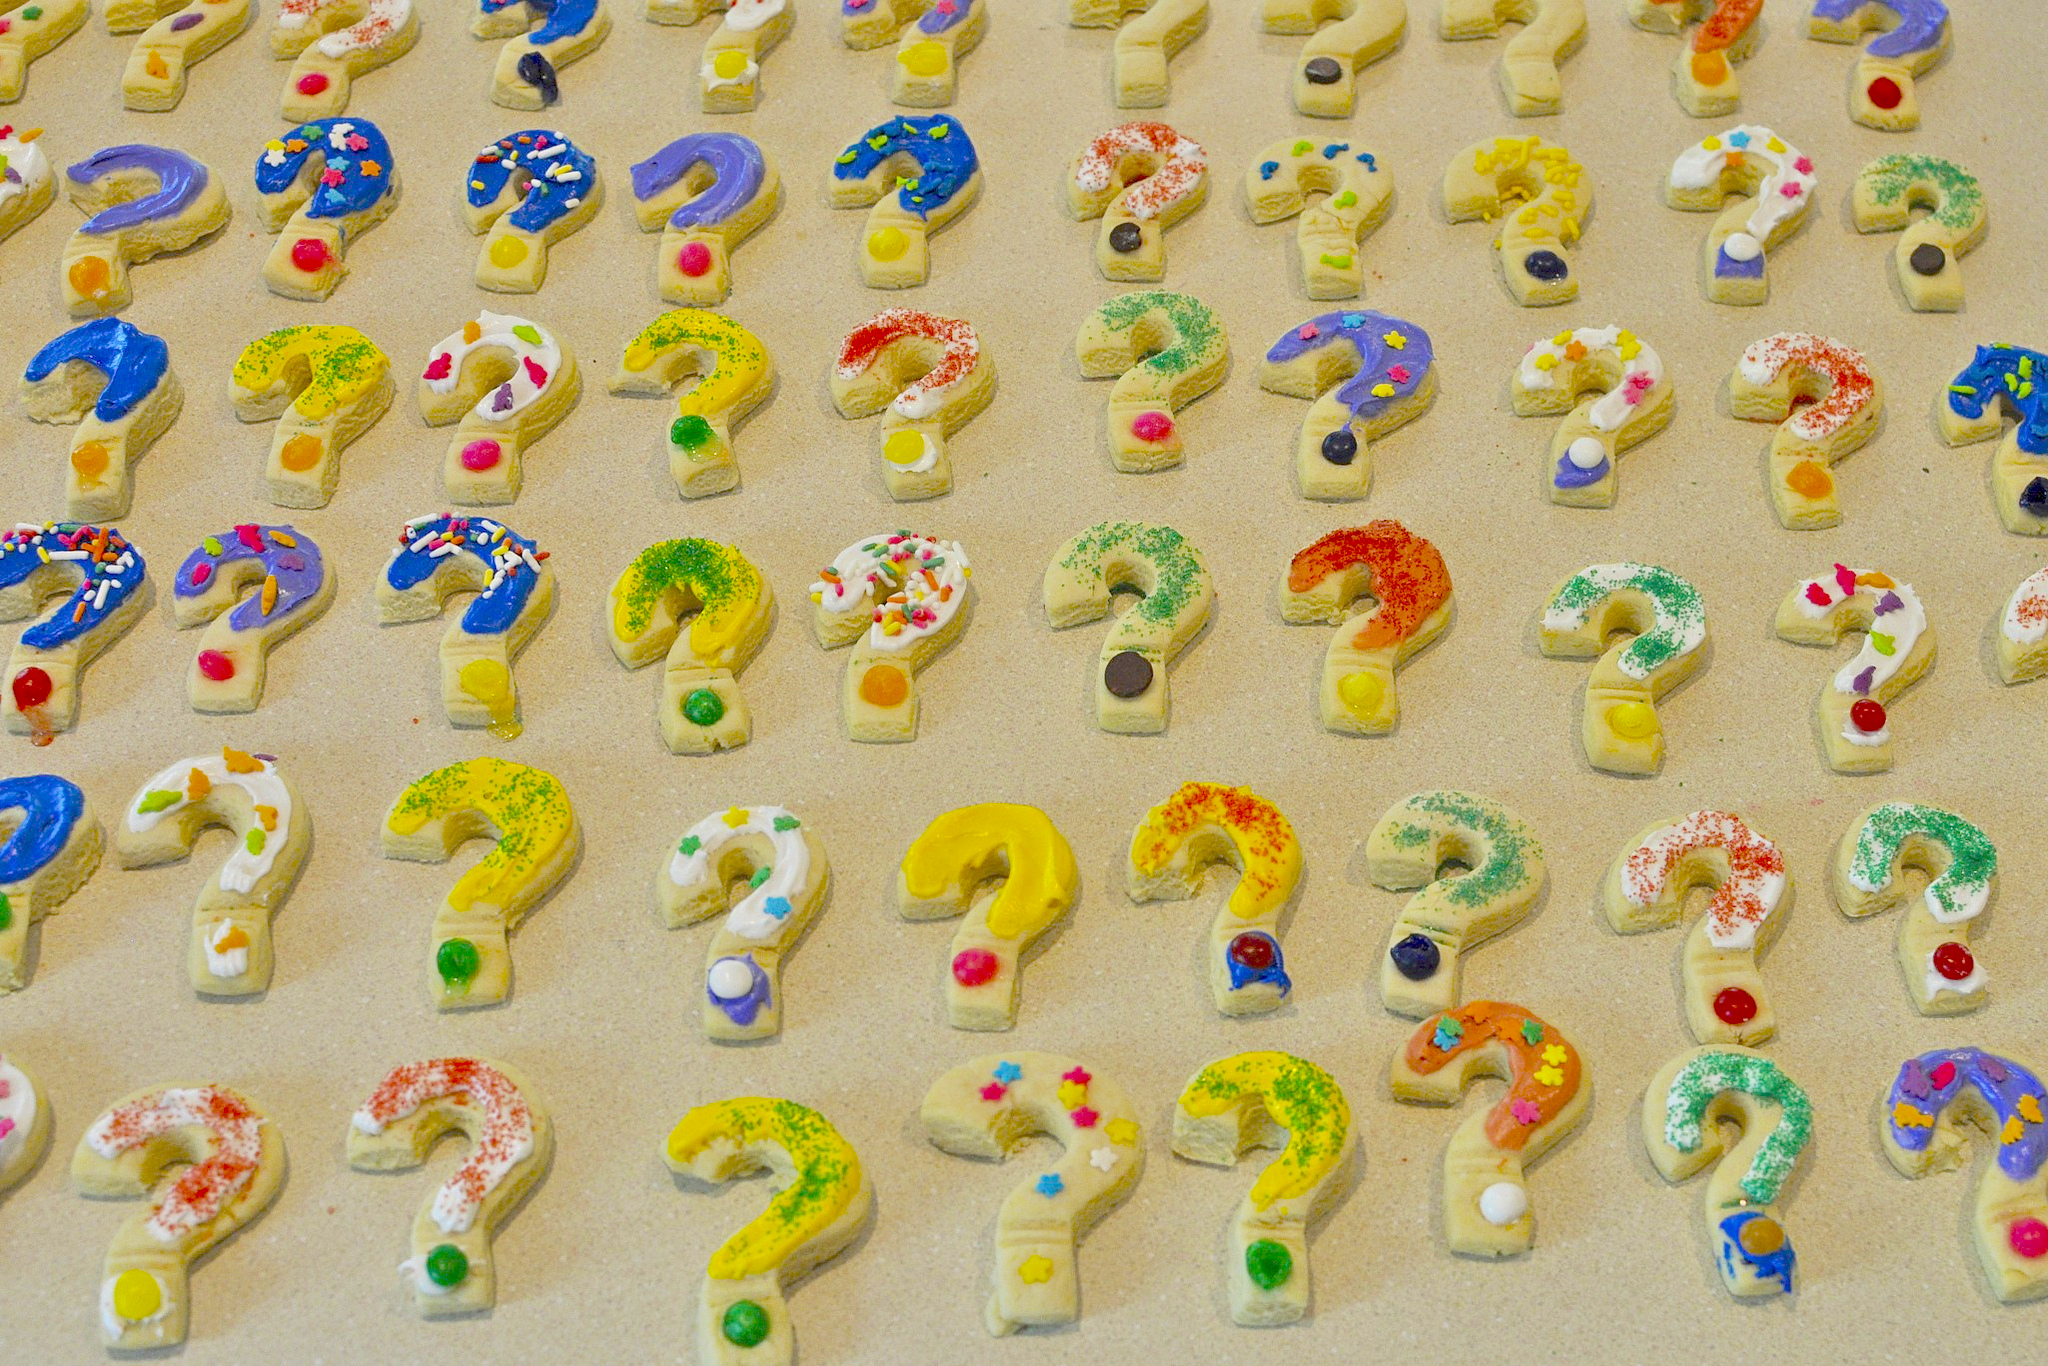 sugar cookies with colorful frosting in the shape of a question mark